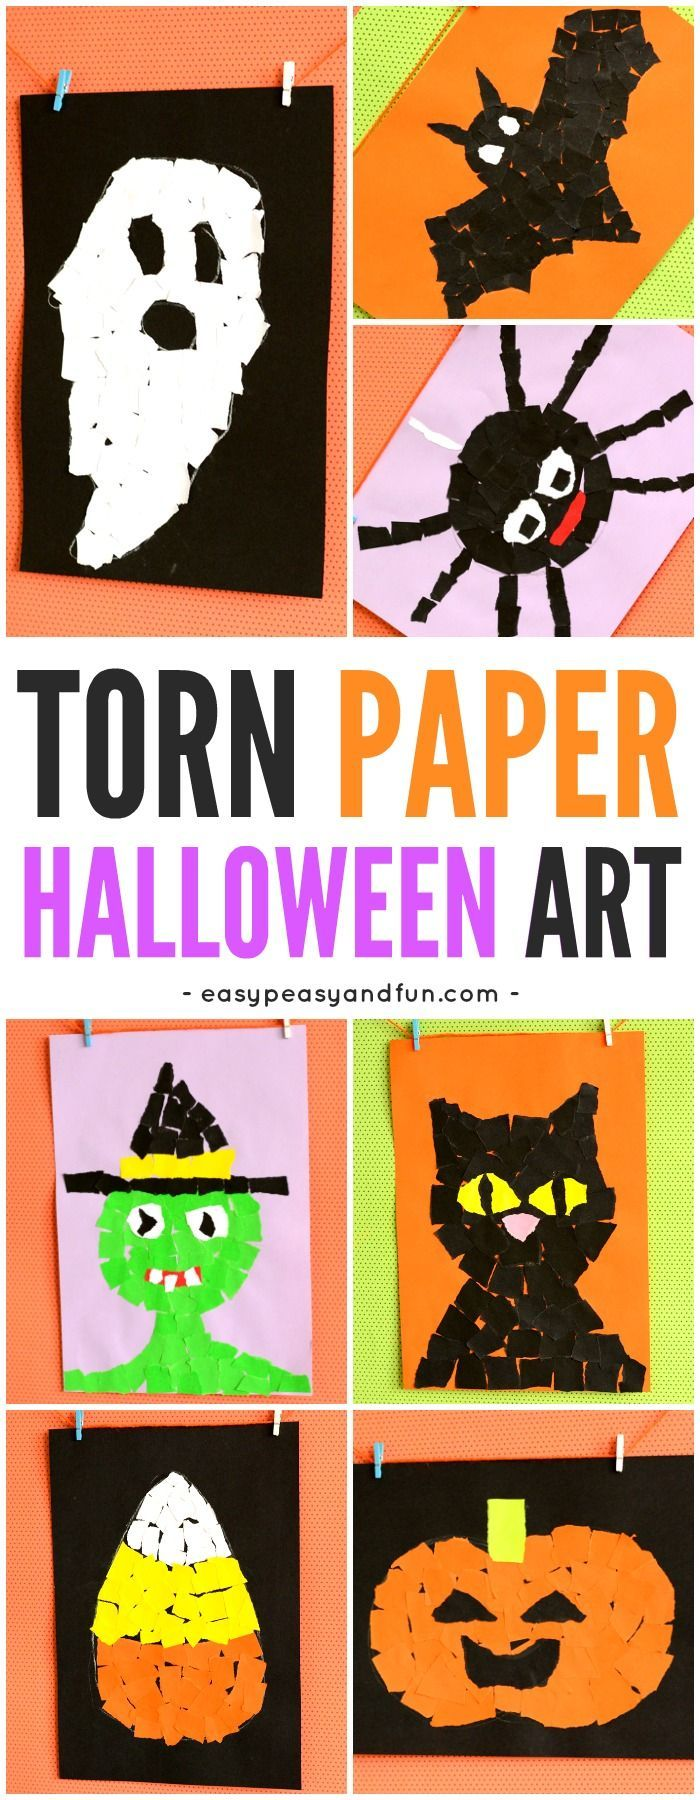 halloween torn paper art for kids a fun way to create art this autumn with